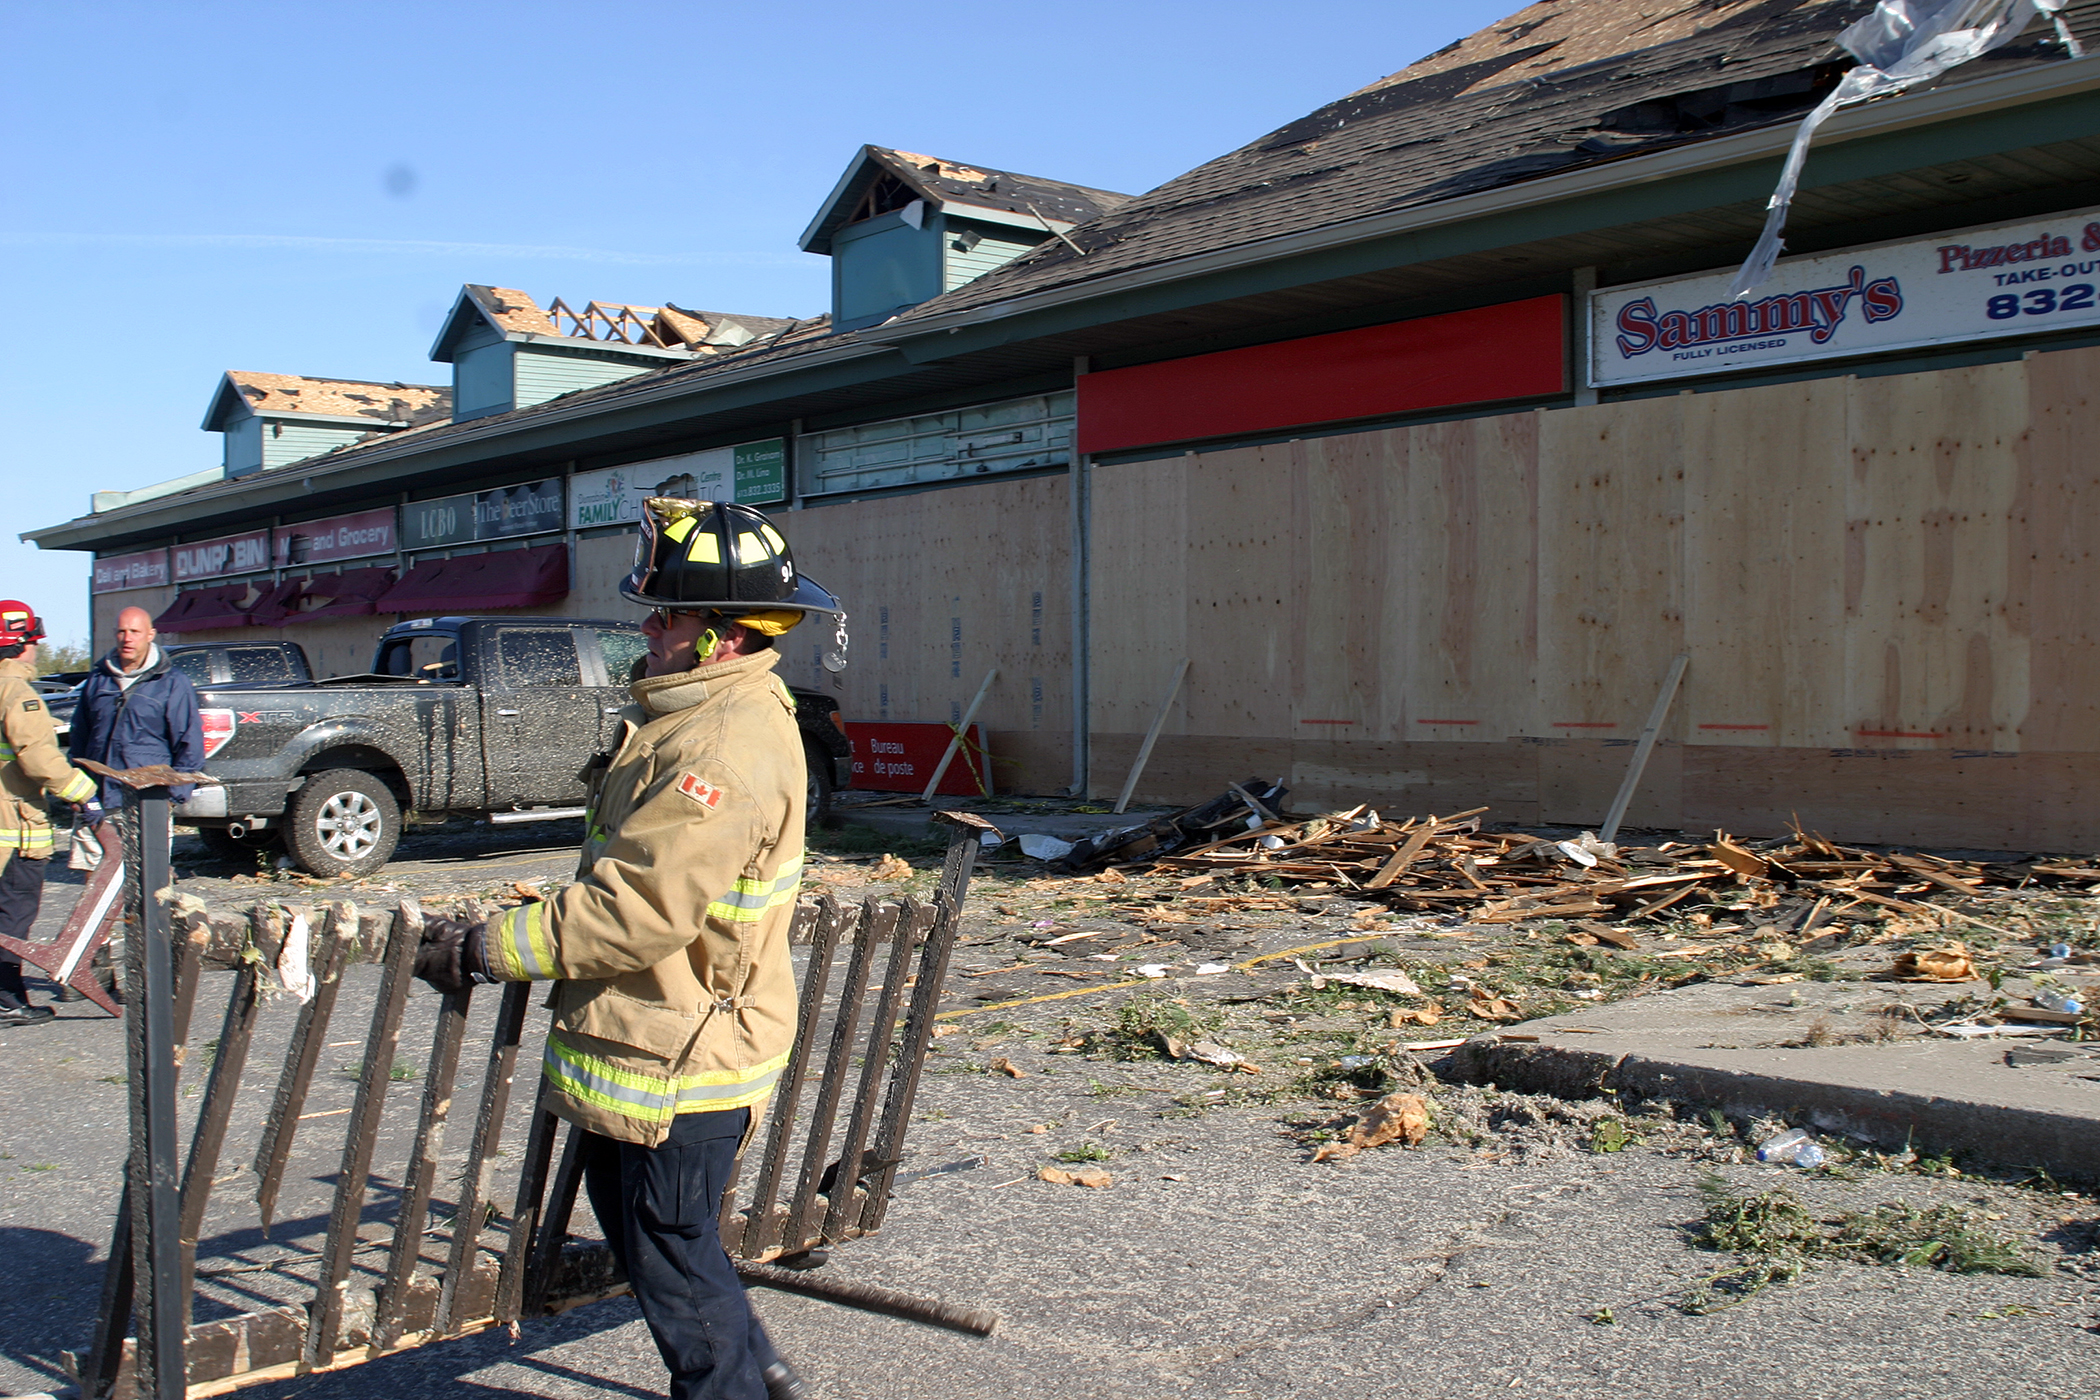 Firefighters, business owners and volunteers clear debris from the mini-mall in Dunrobin. Photo by Jake Davies